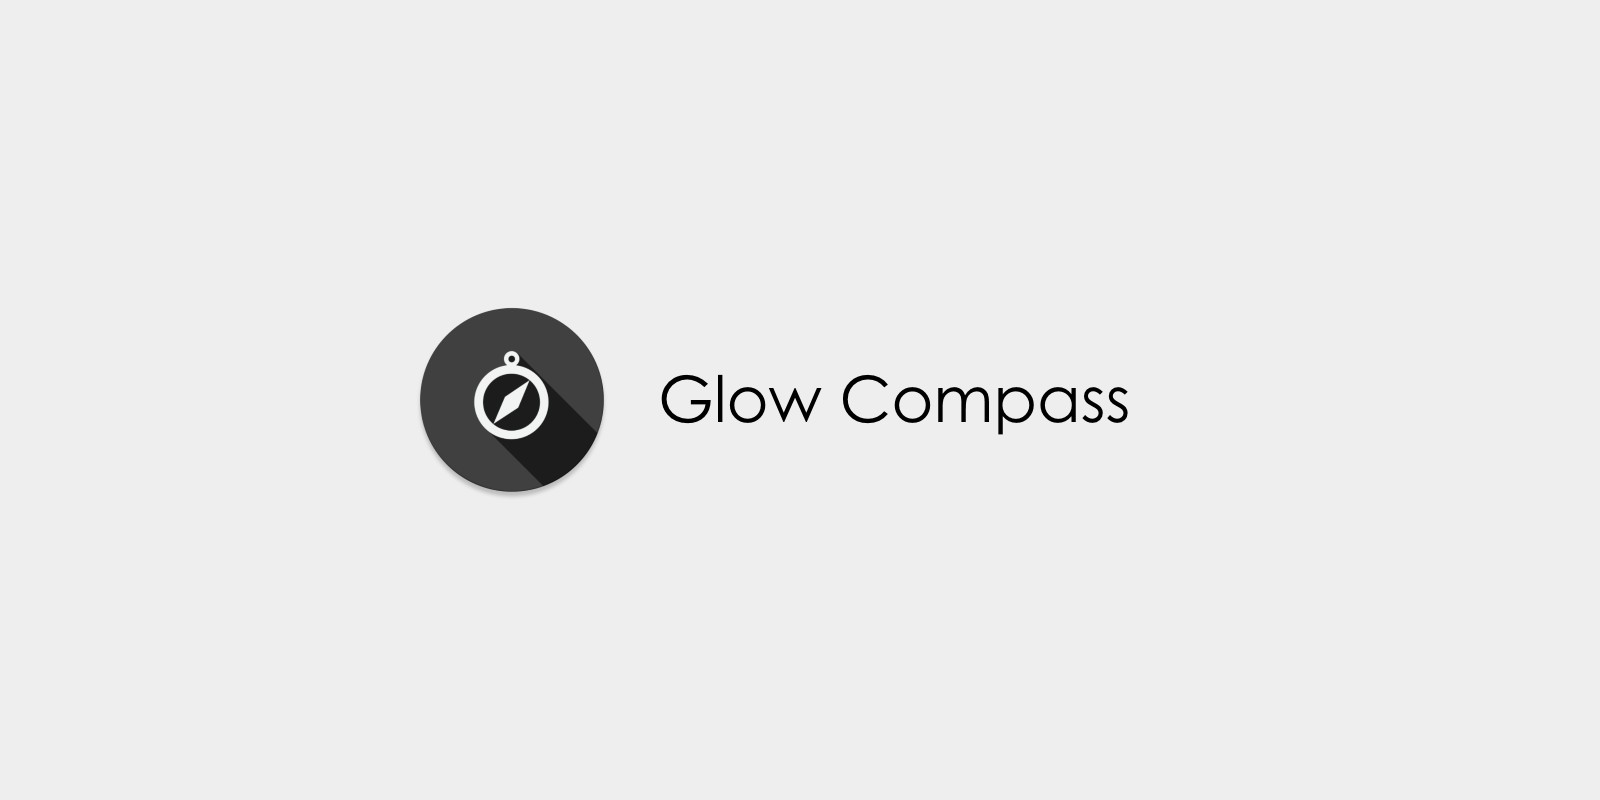 Glow Compass - Android App Source Code